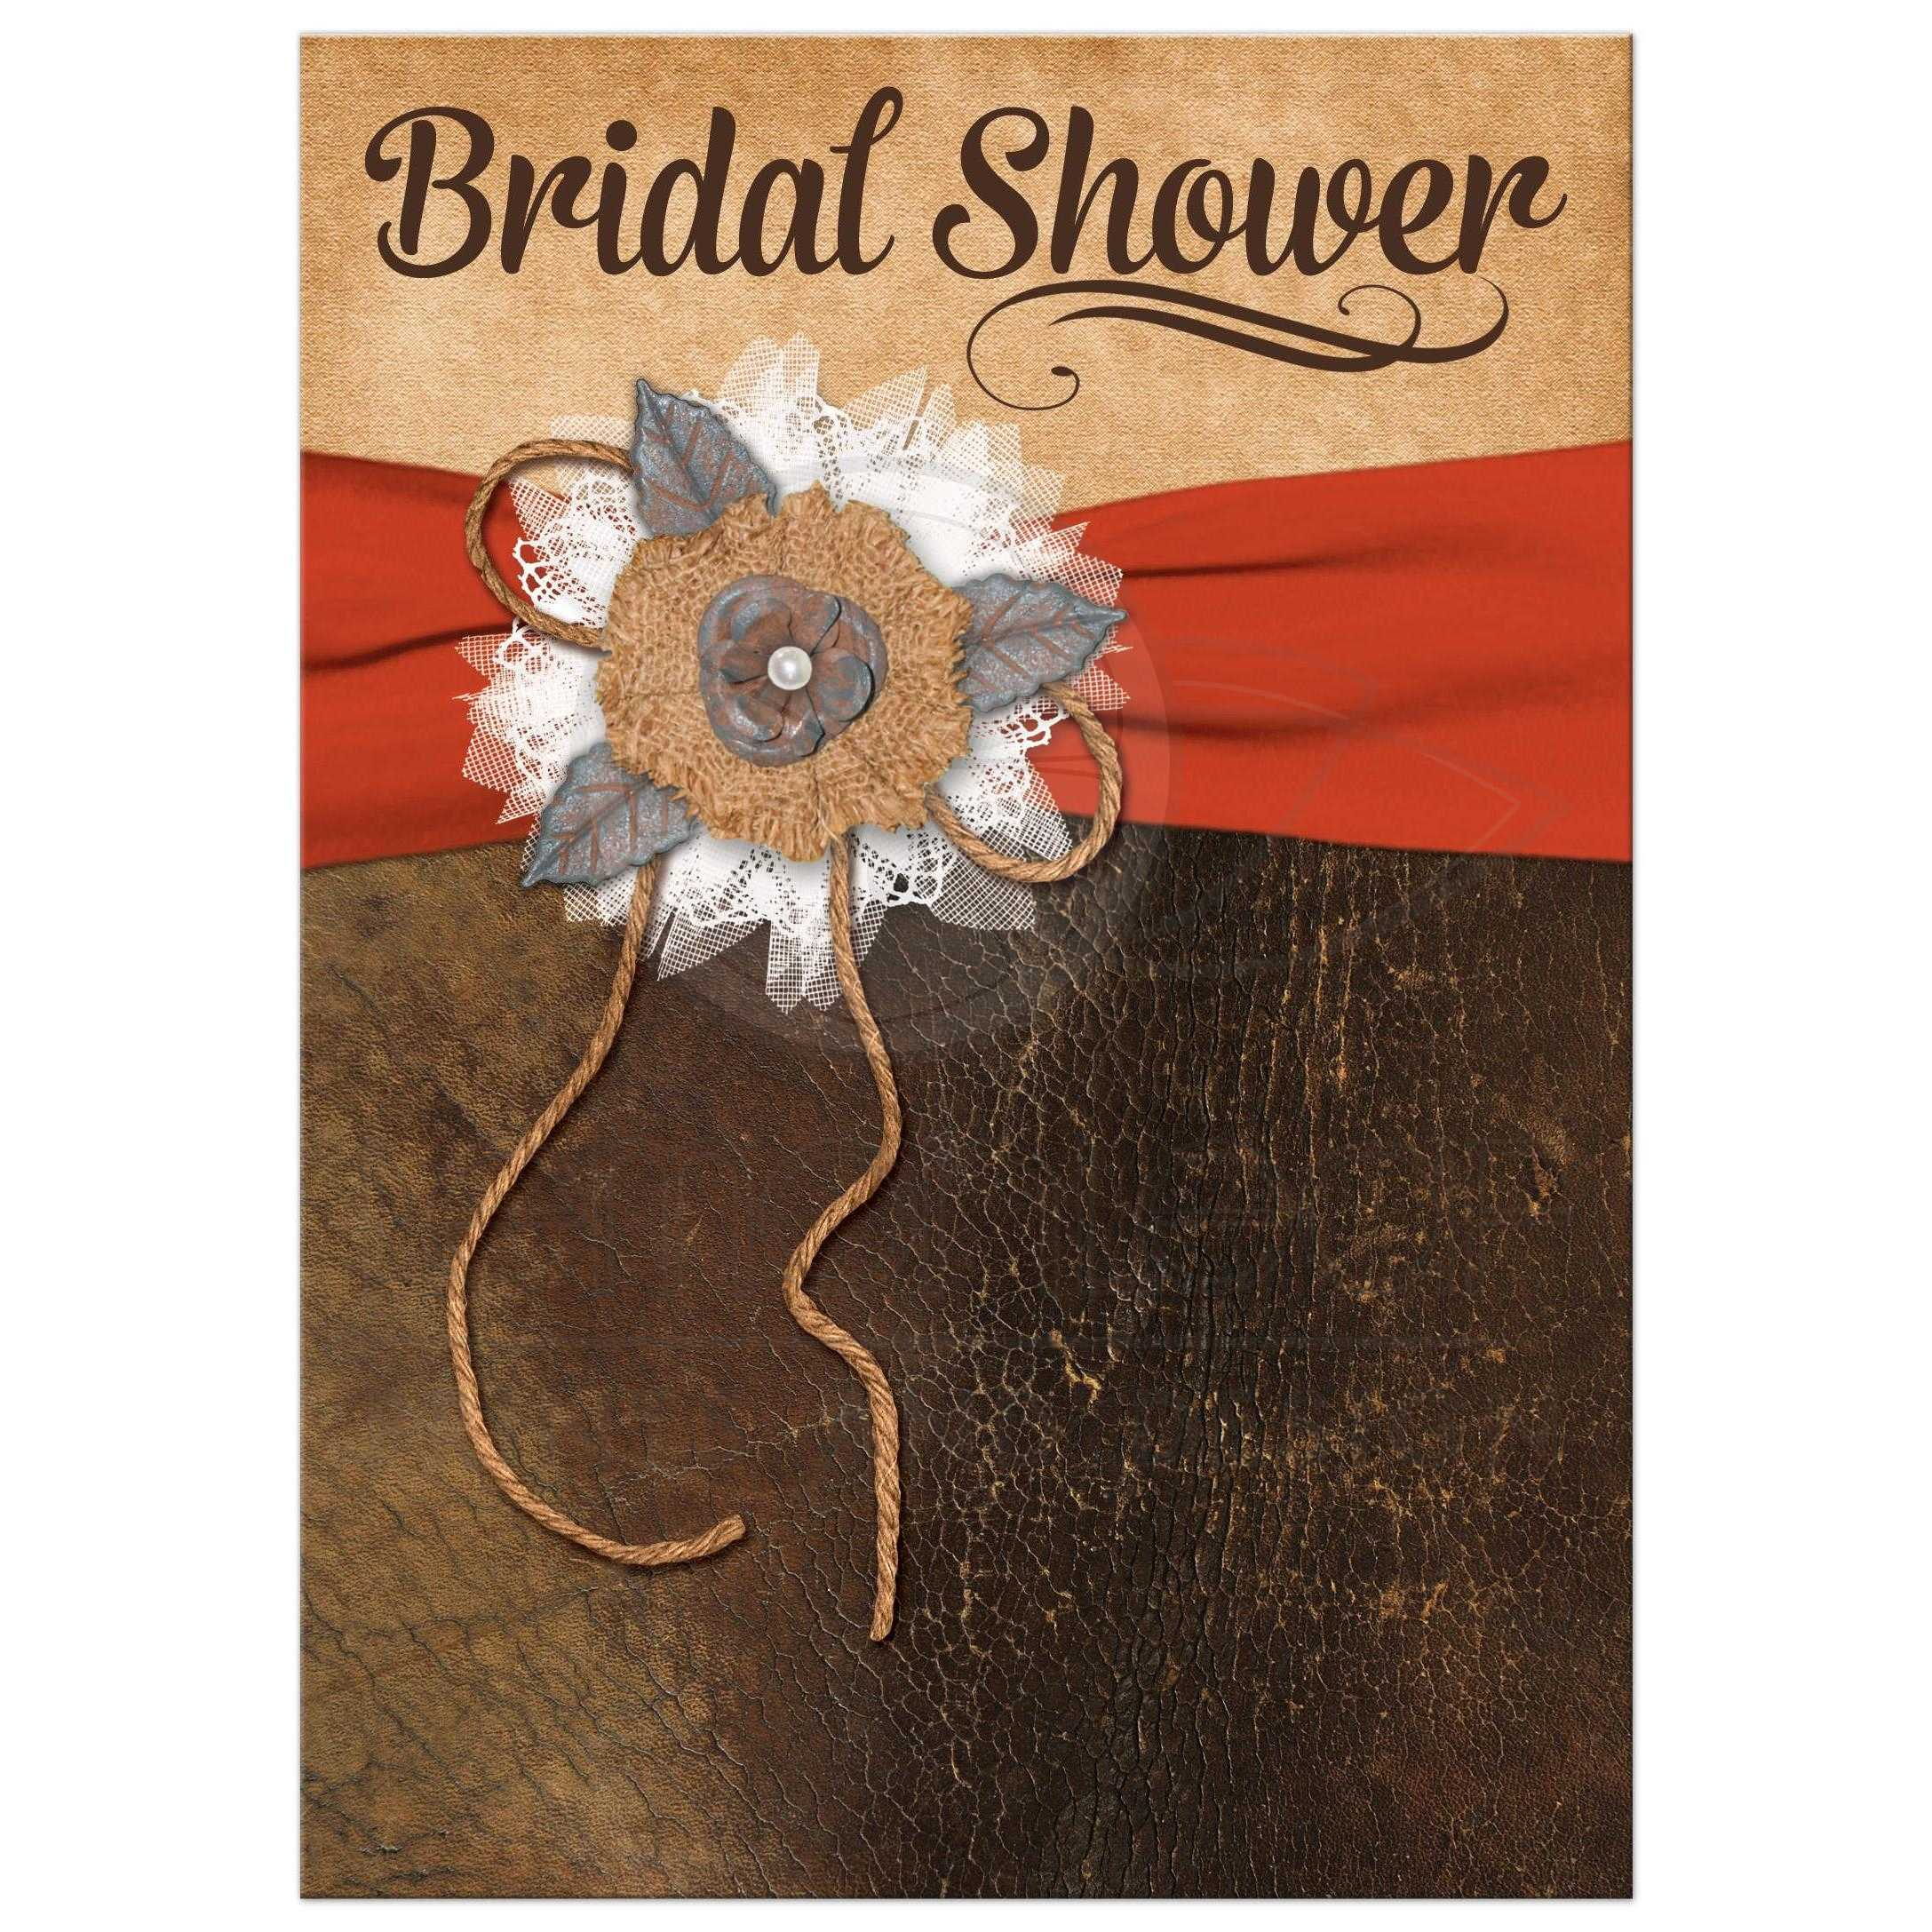 Bridal Shower Invite | Leather & Lace | Orange, Brown | Shabby Chic ...